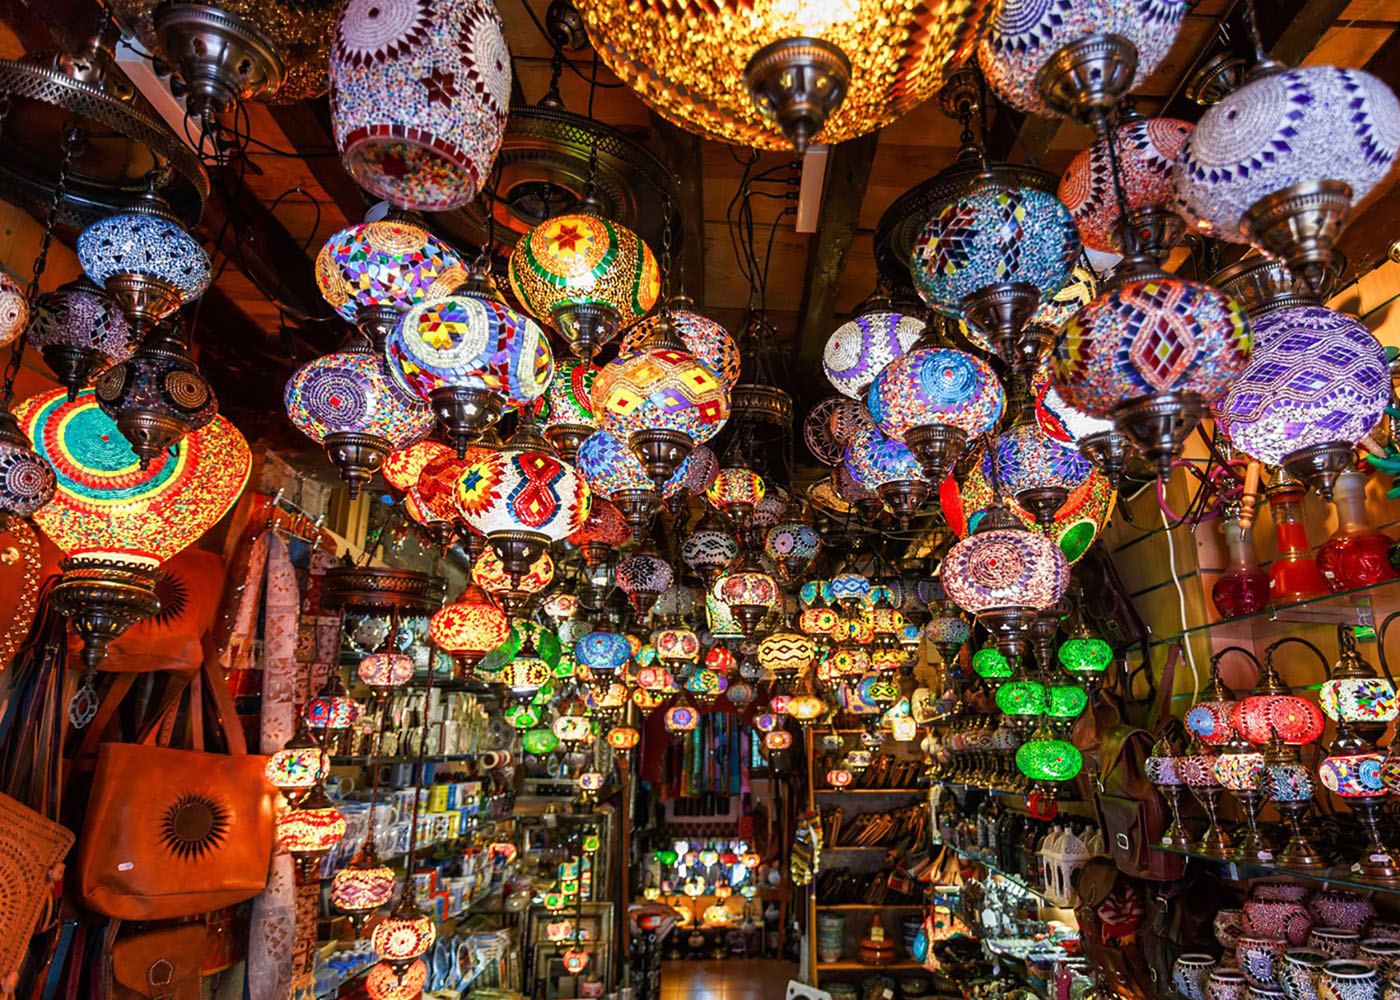 Lanterns and lamps in the market of Marrakesh, Morocco.